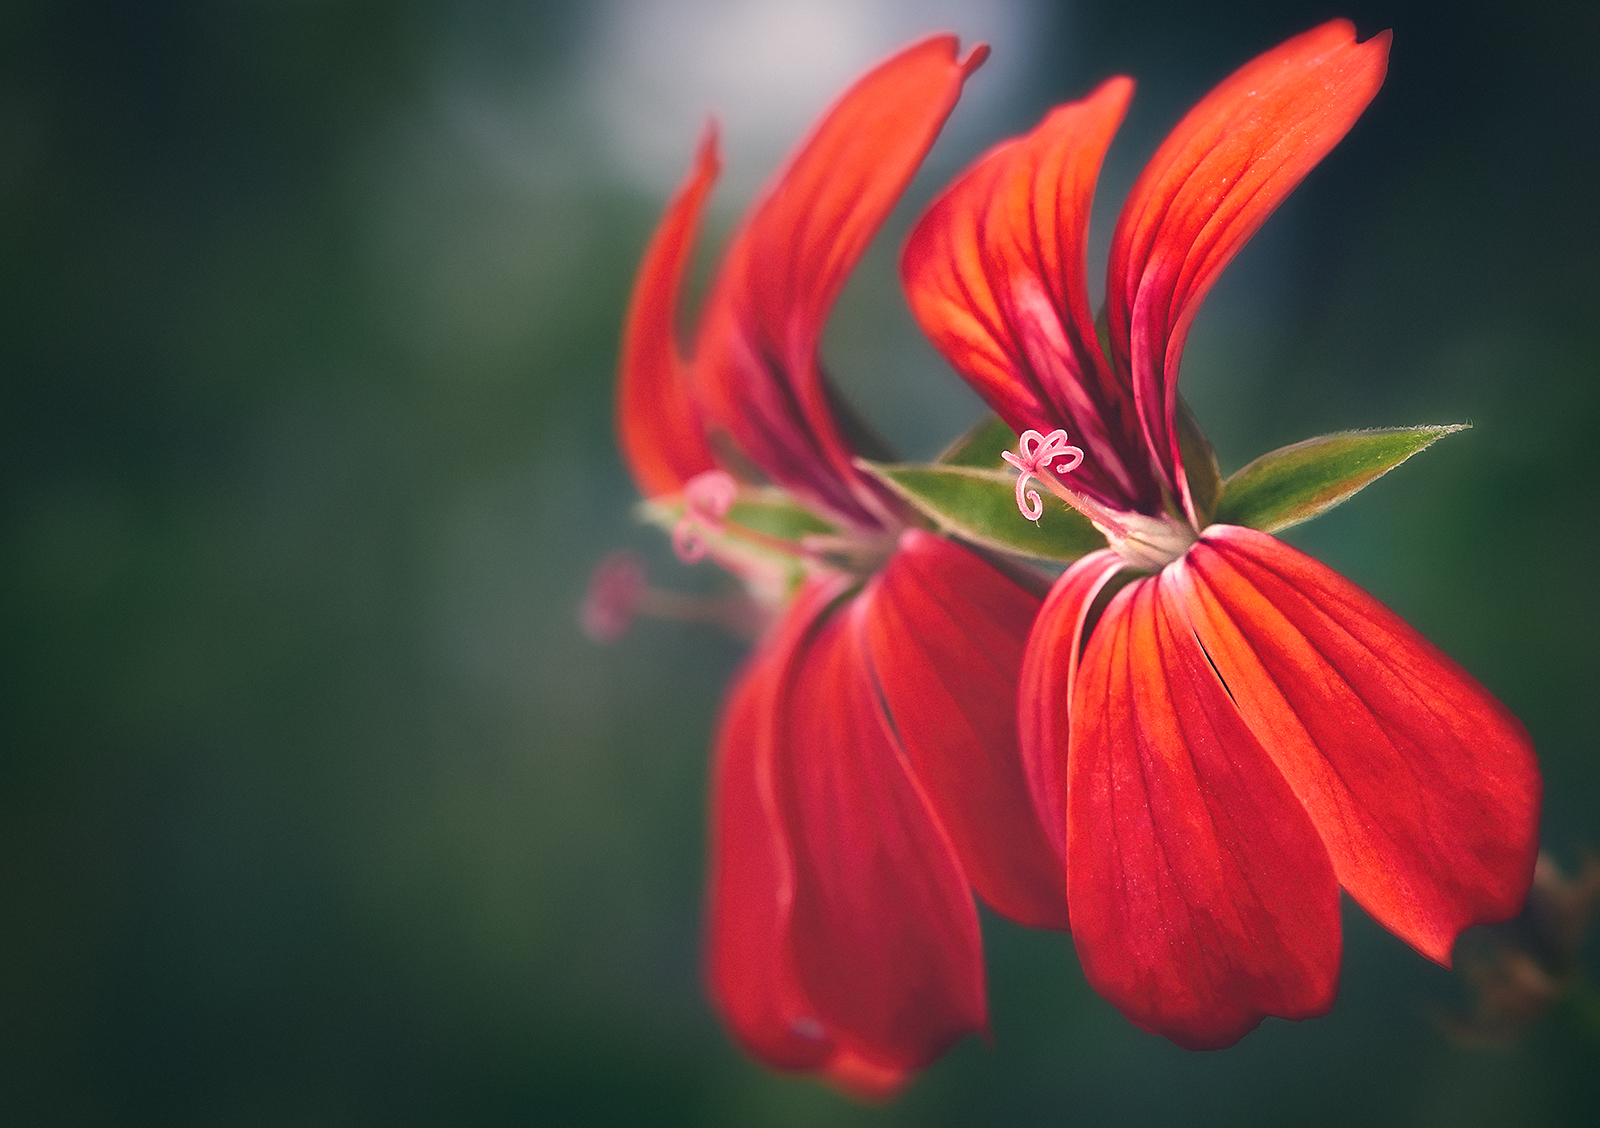 Red Flowers Dancing with Life